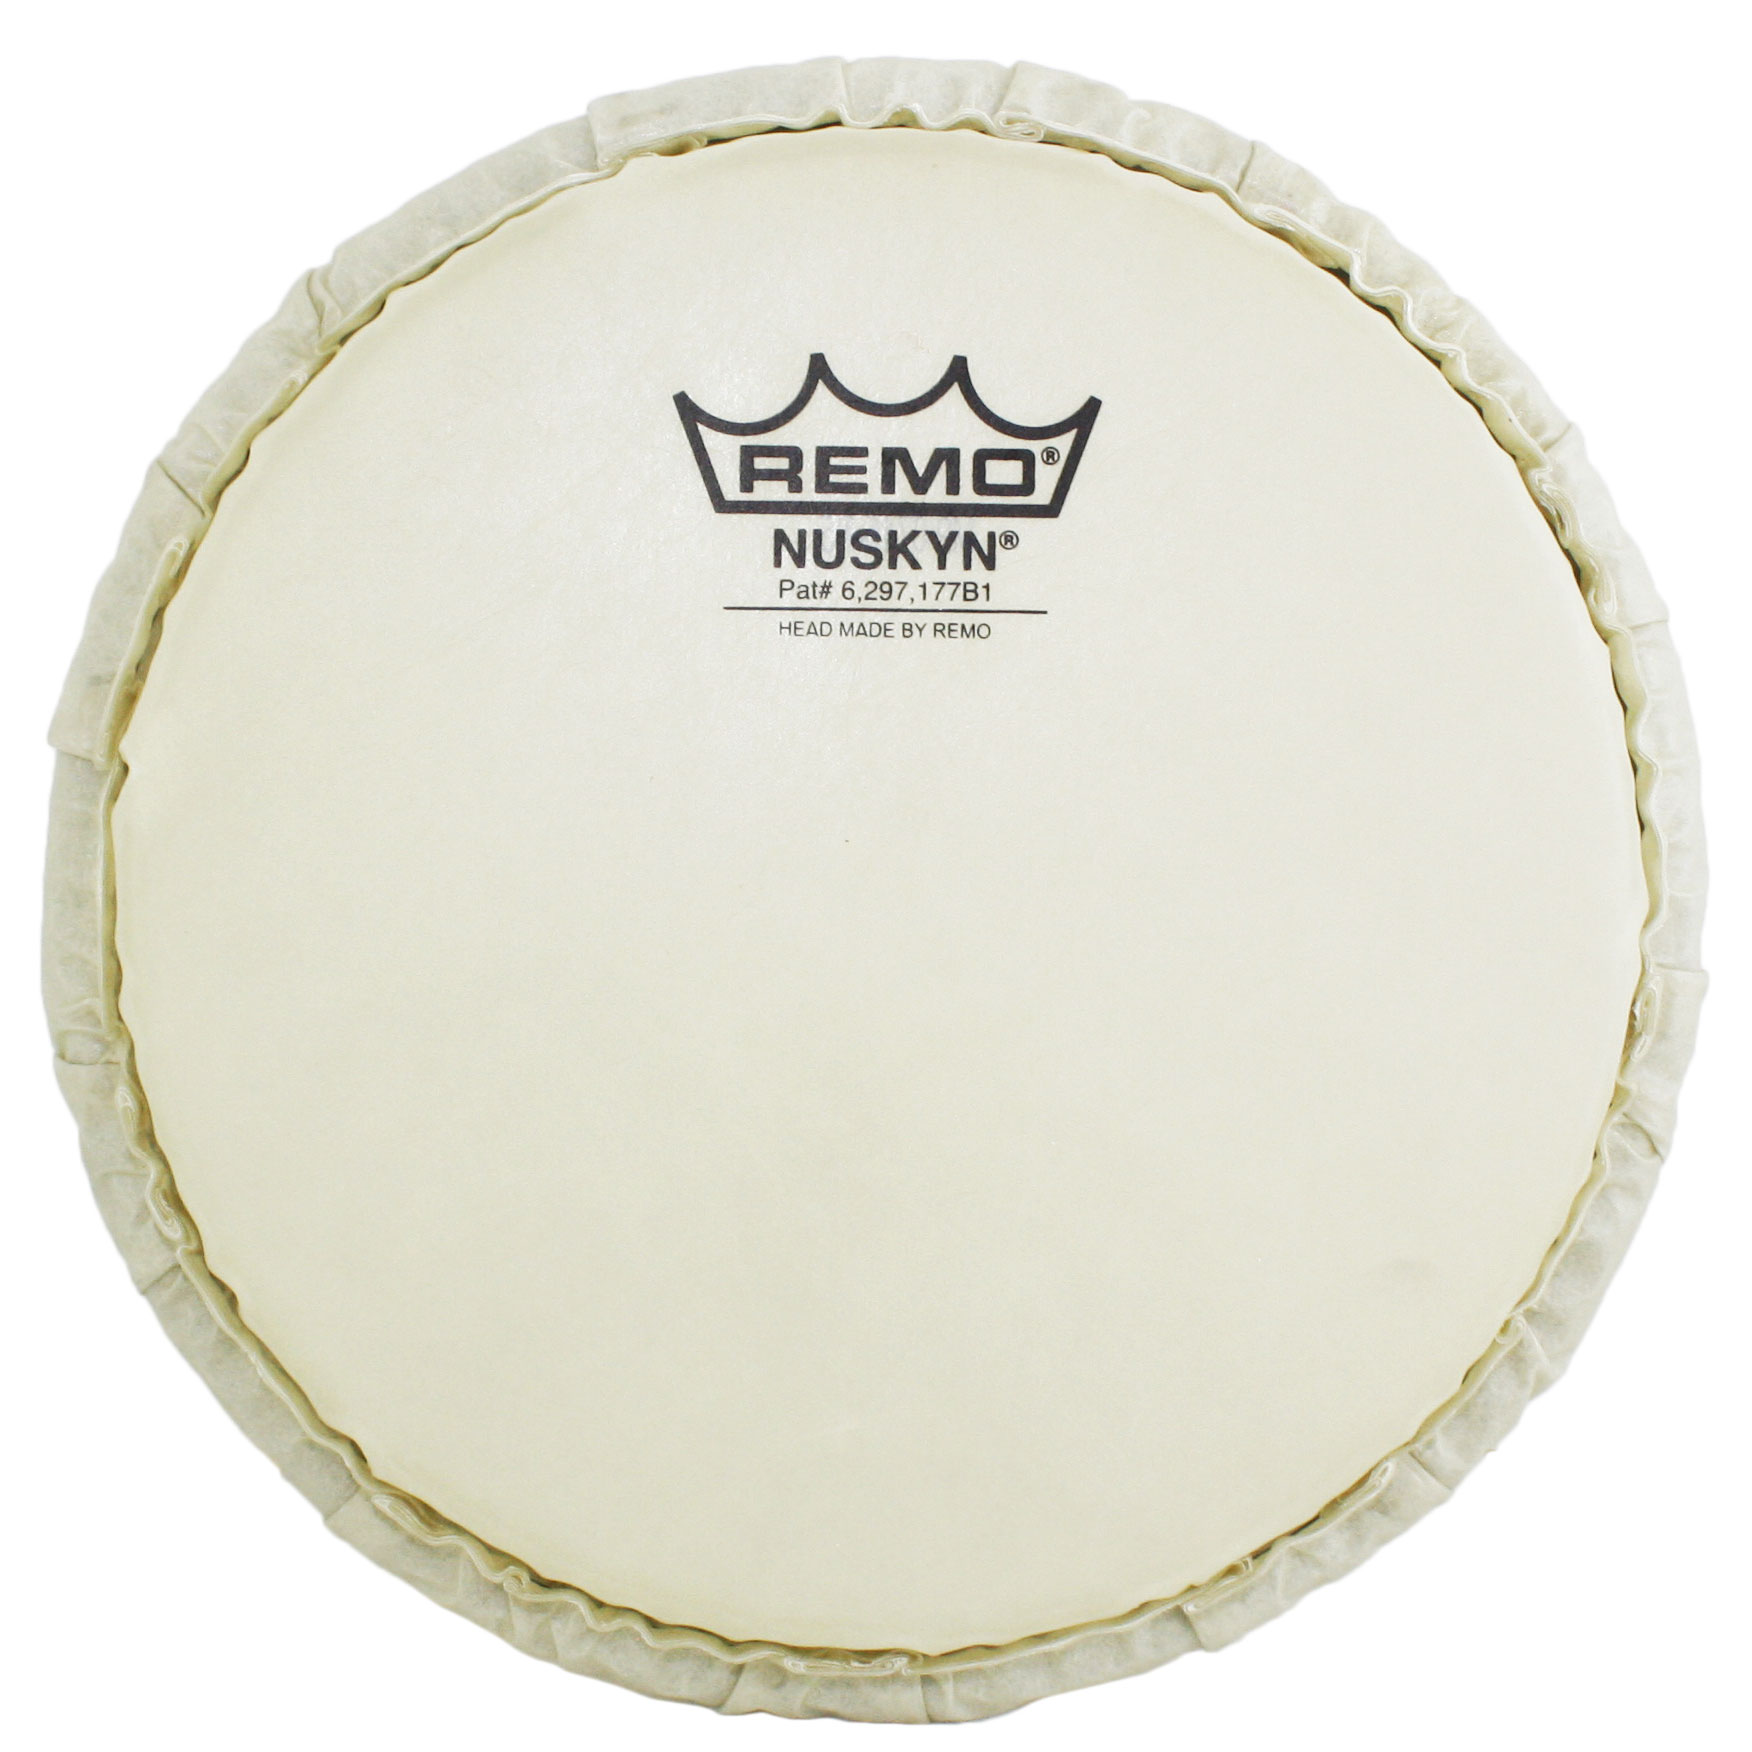 "Remo 7.15"" Tucked Nuskyn Bongo Drum Head"